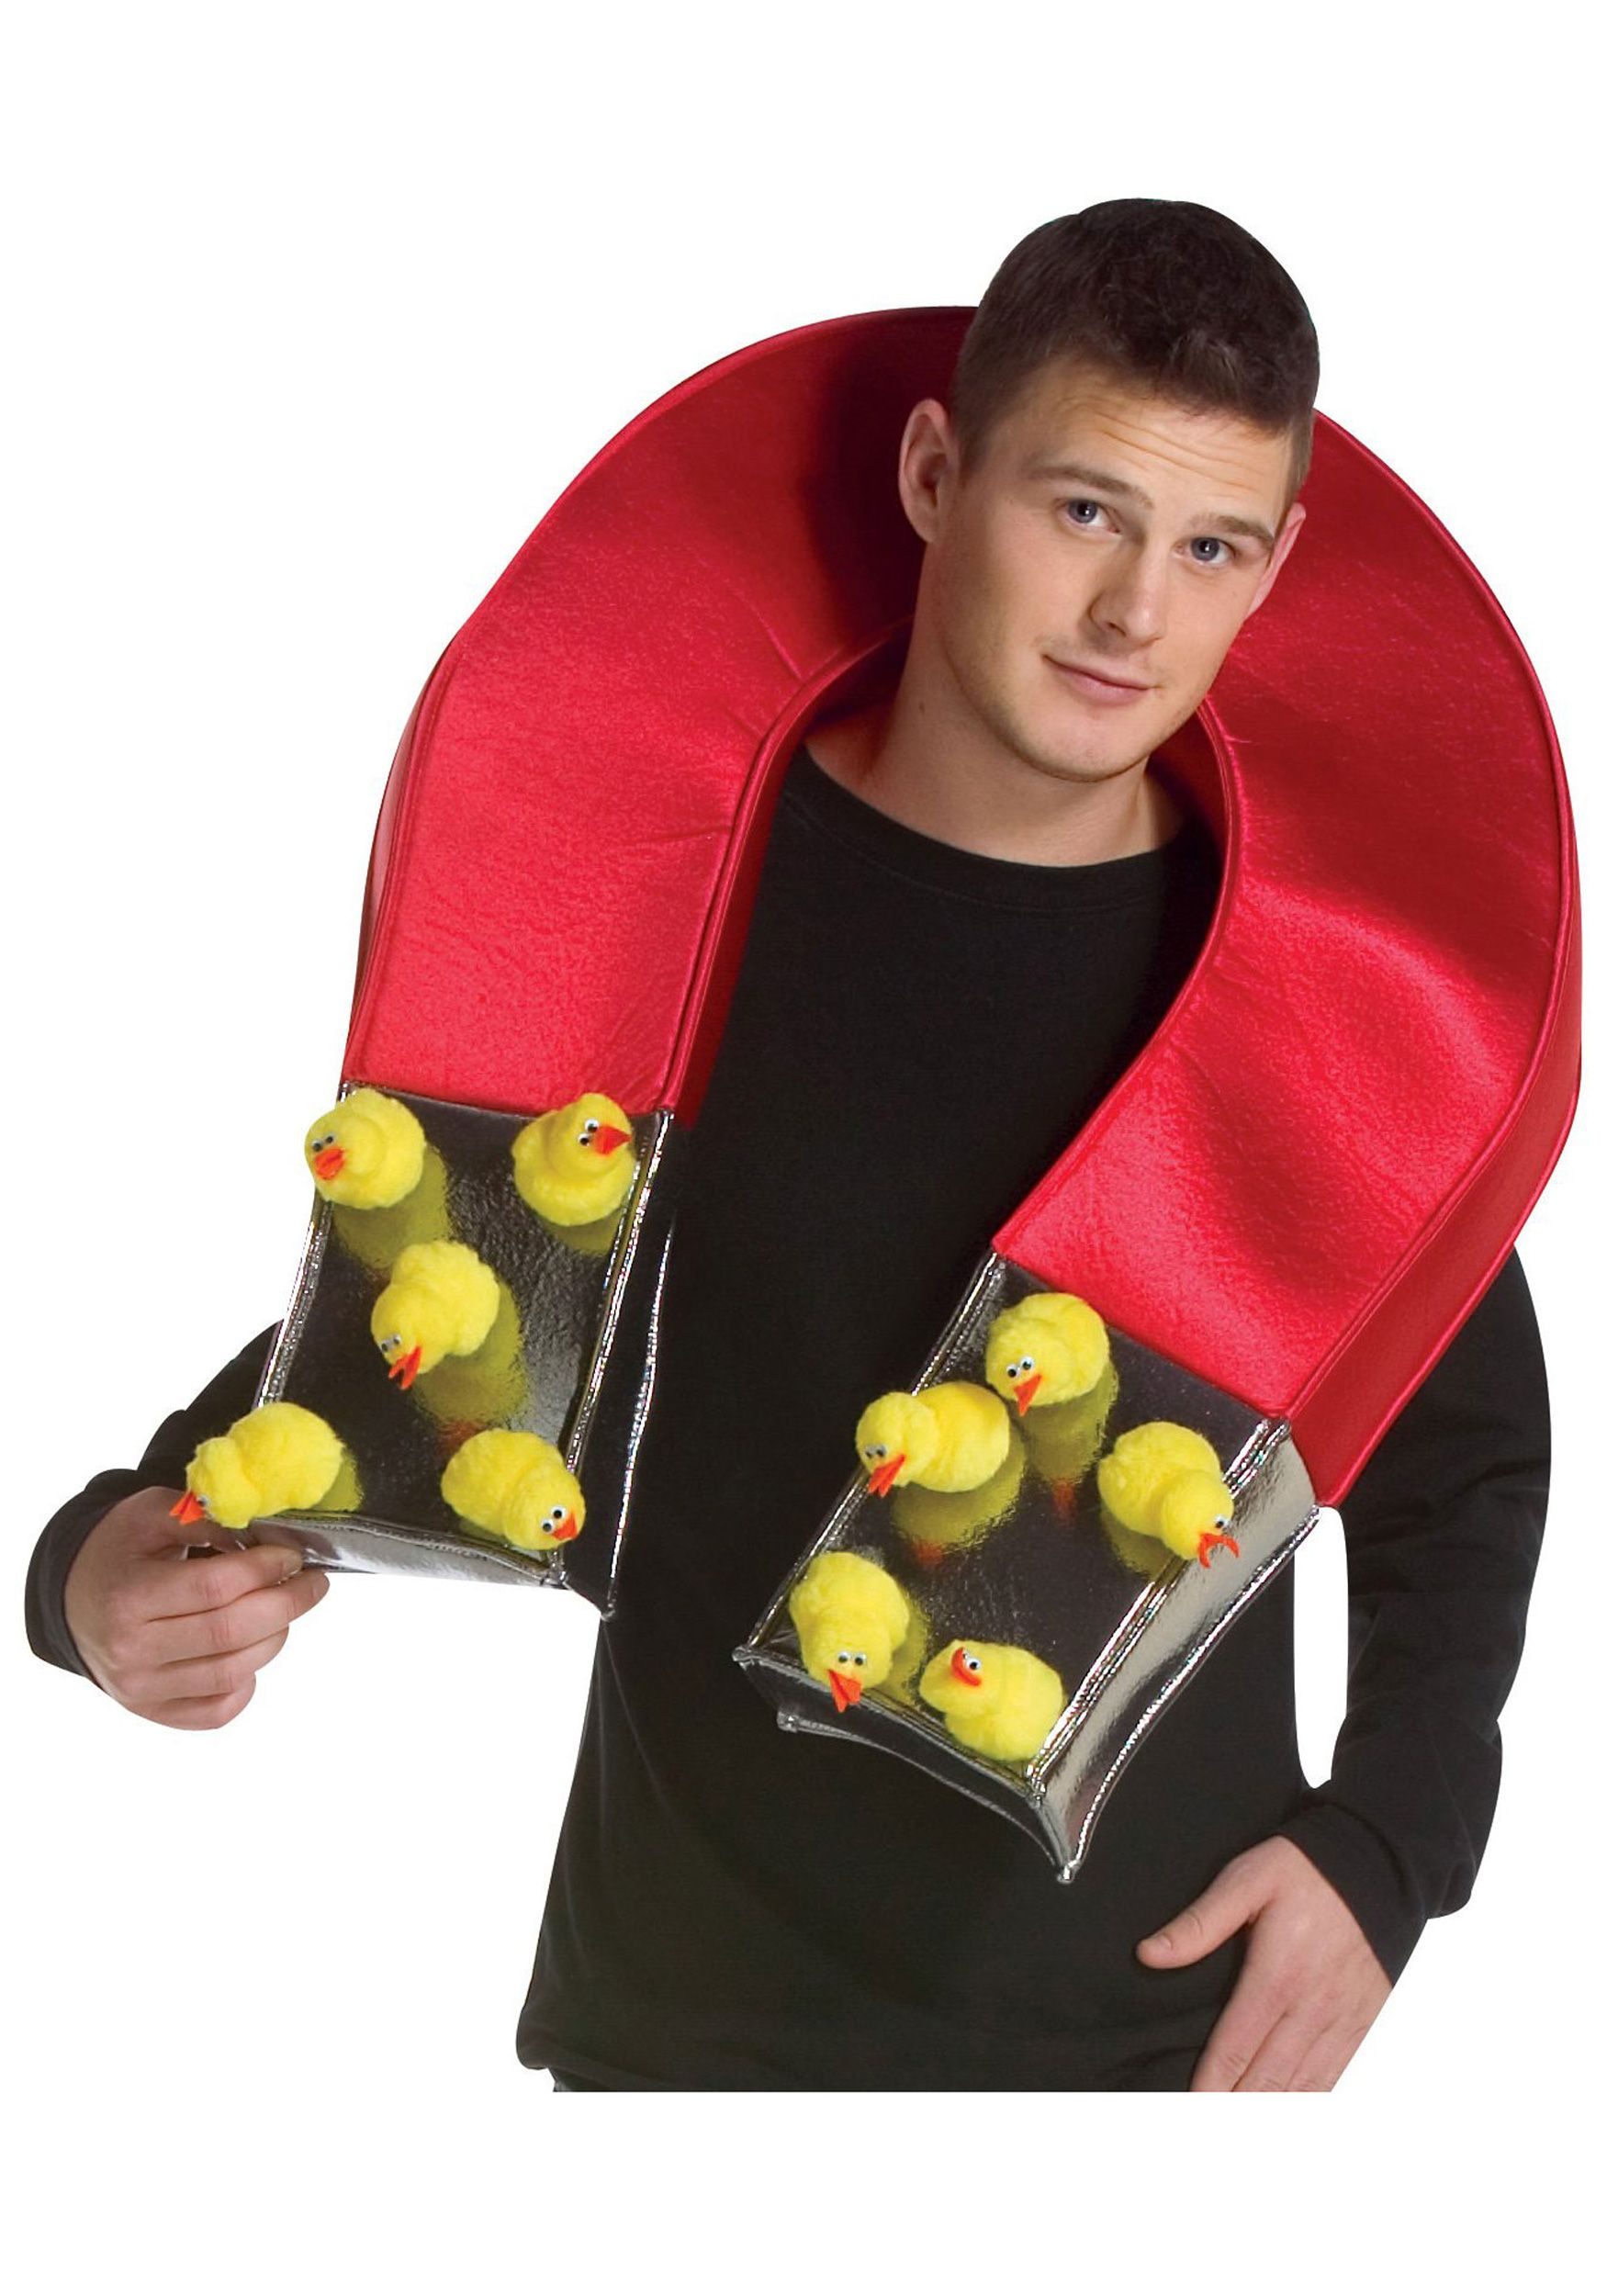 Costume ideas for men home halloween costumes funny costume our funny chick magnet costume is a funny halloween costume for men the mens chick magnet costume is sure to make you the center of attention this solutioingenieria Images